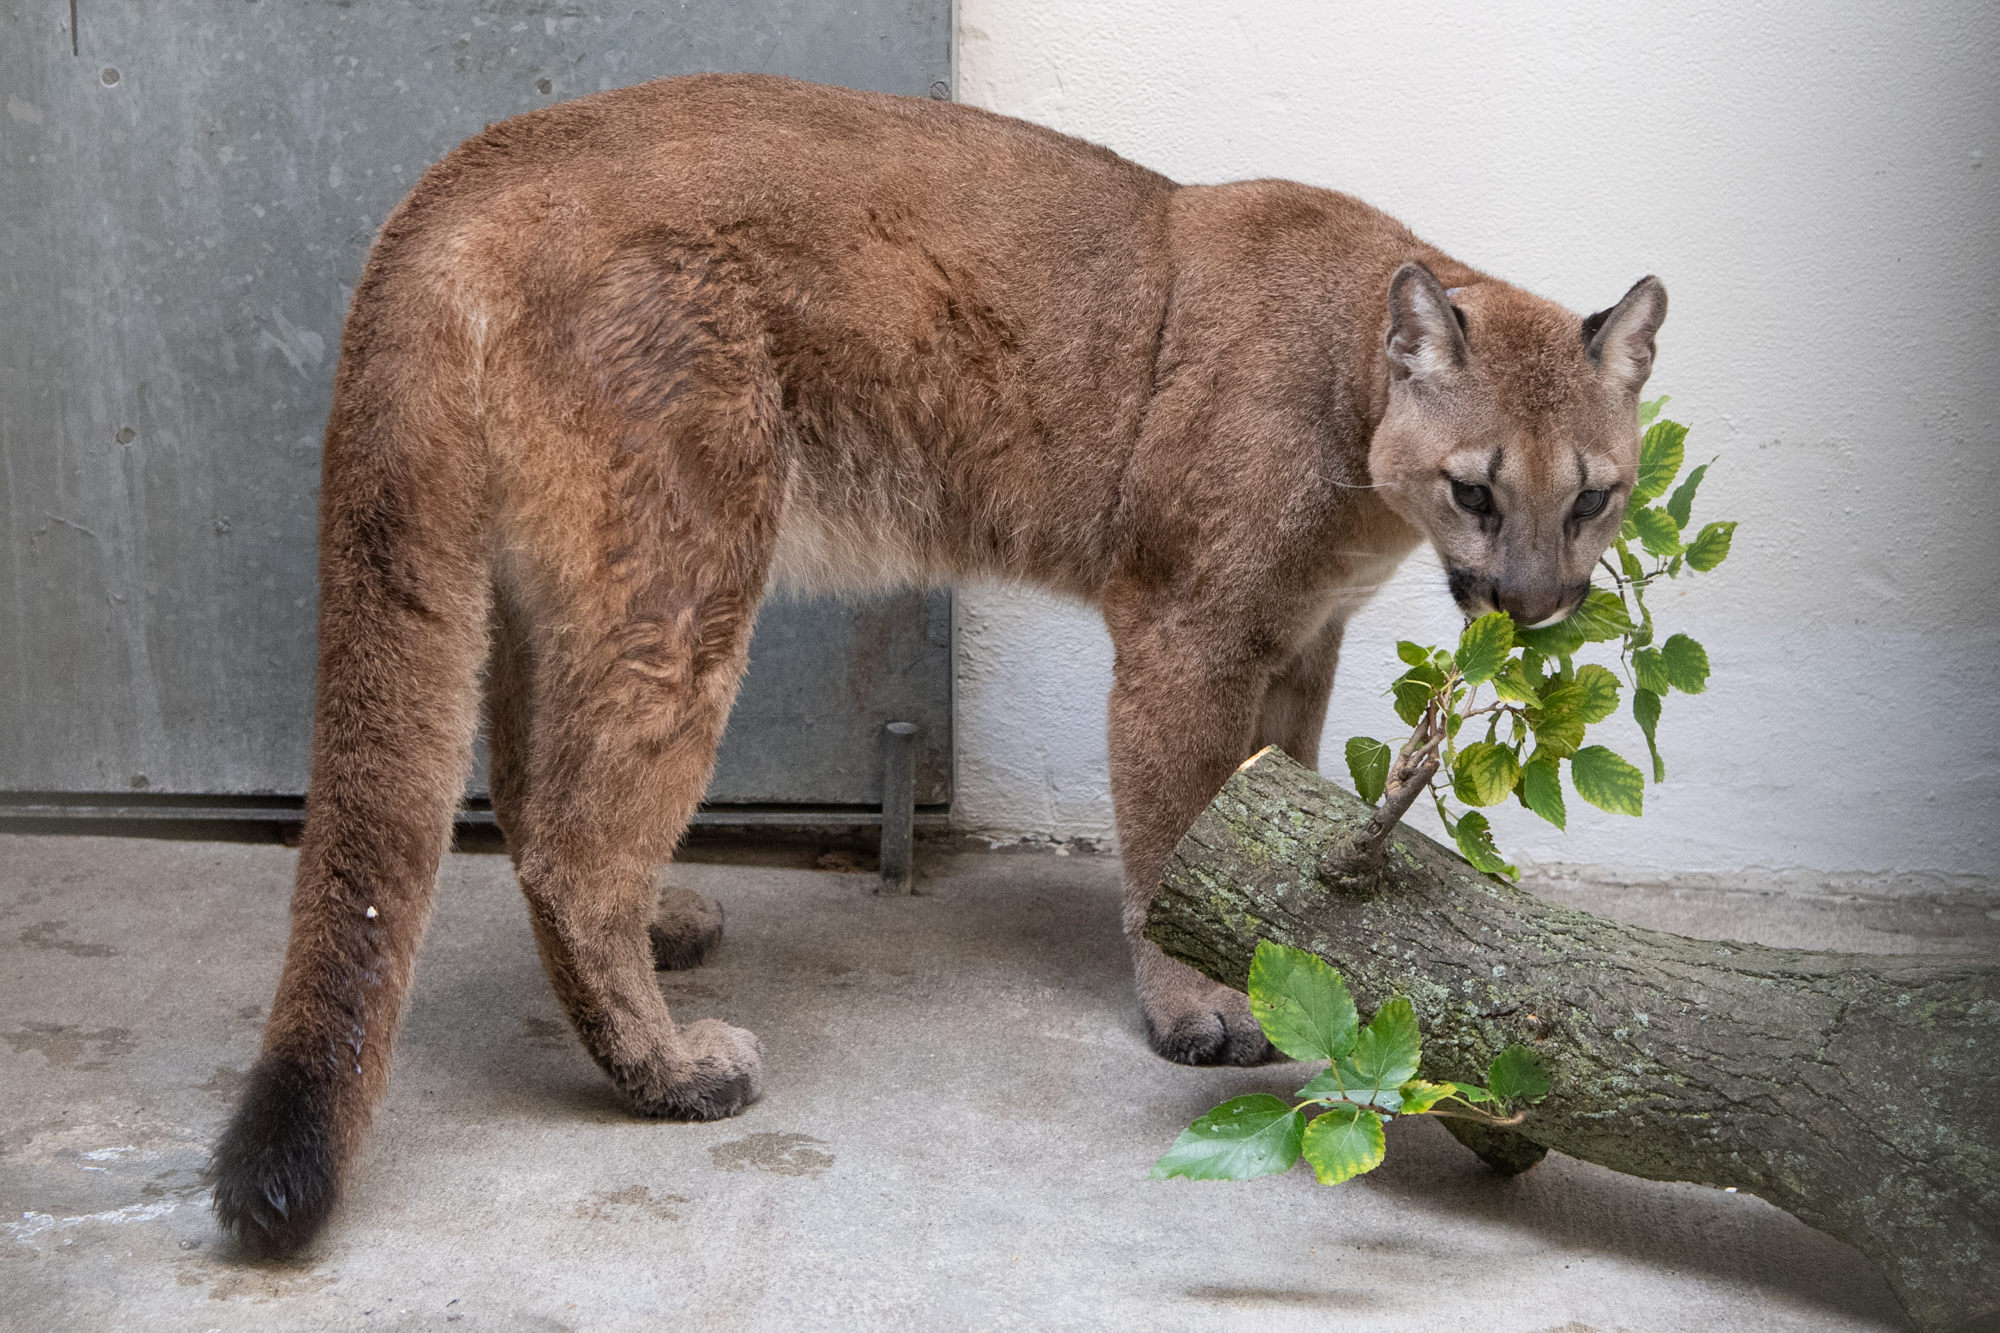 The cougar gnaws at a leafy branch on a tree trunk that's been chopped off